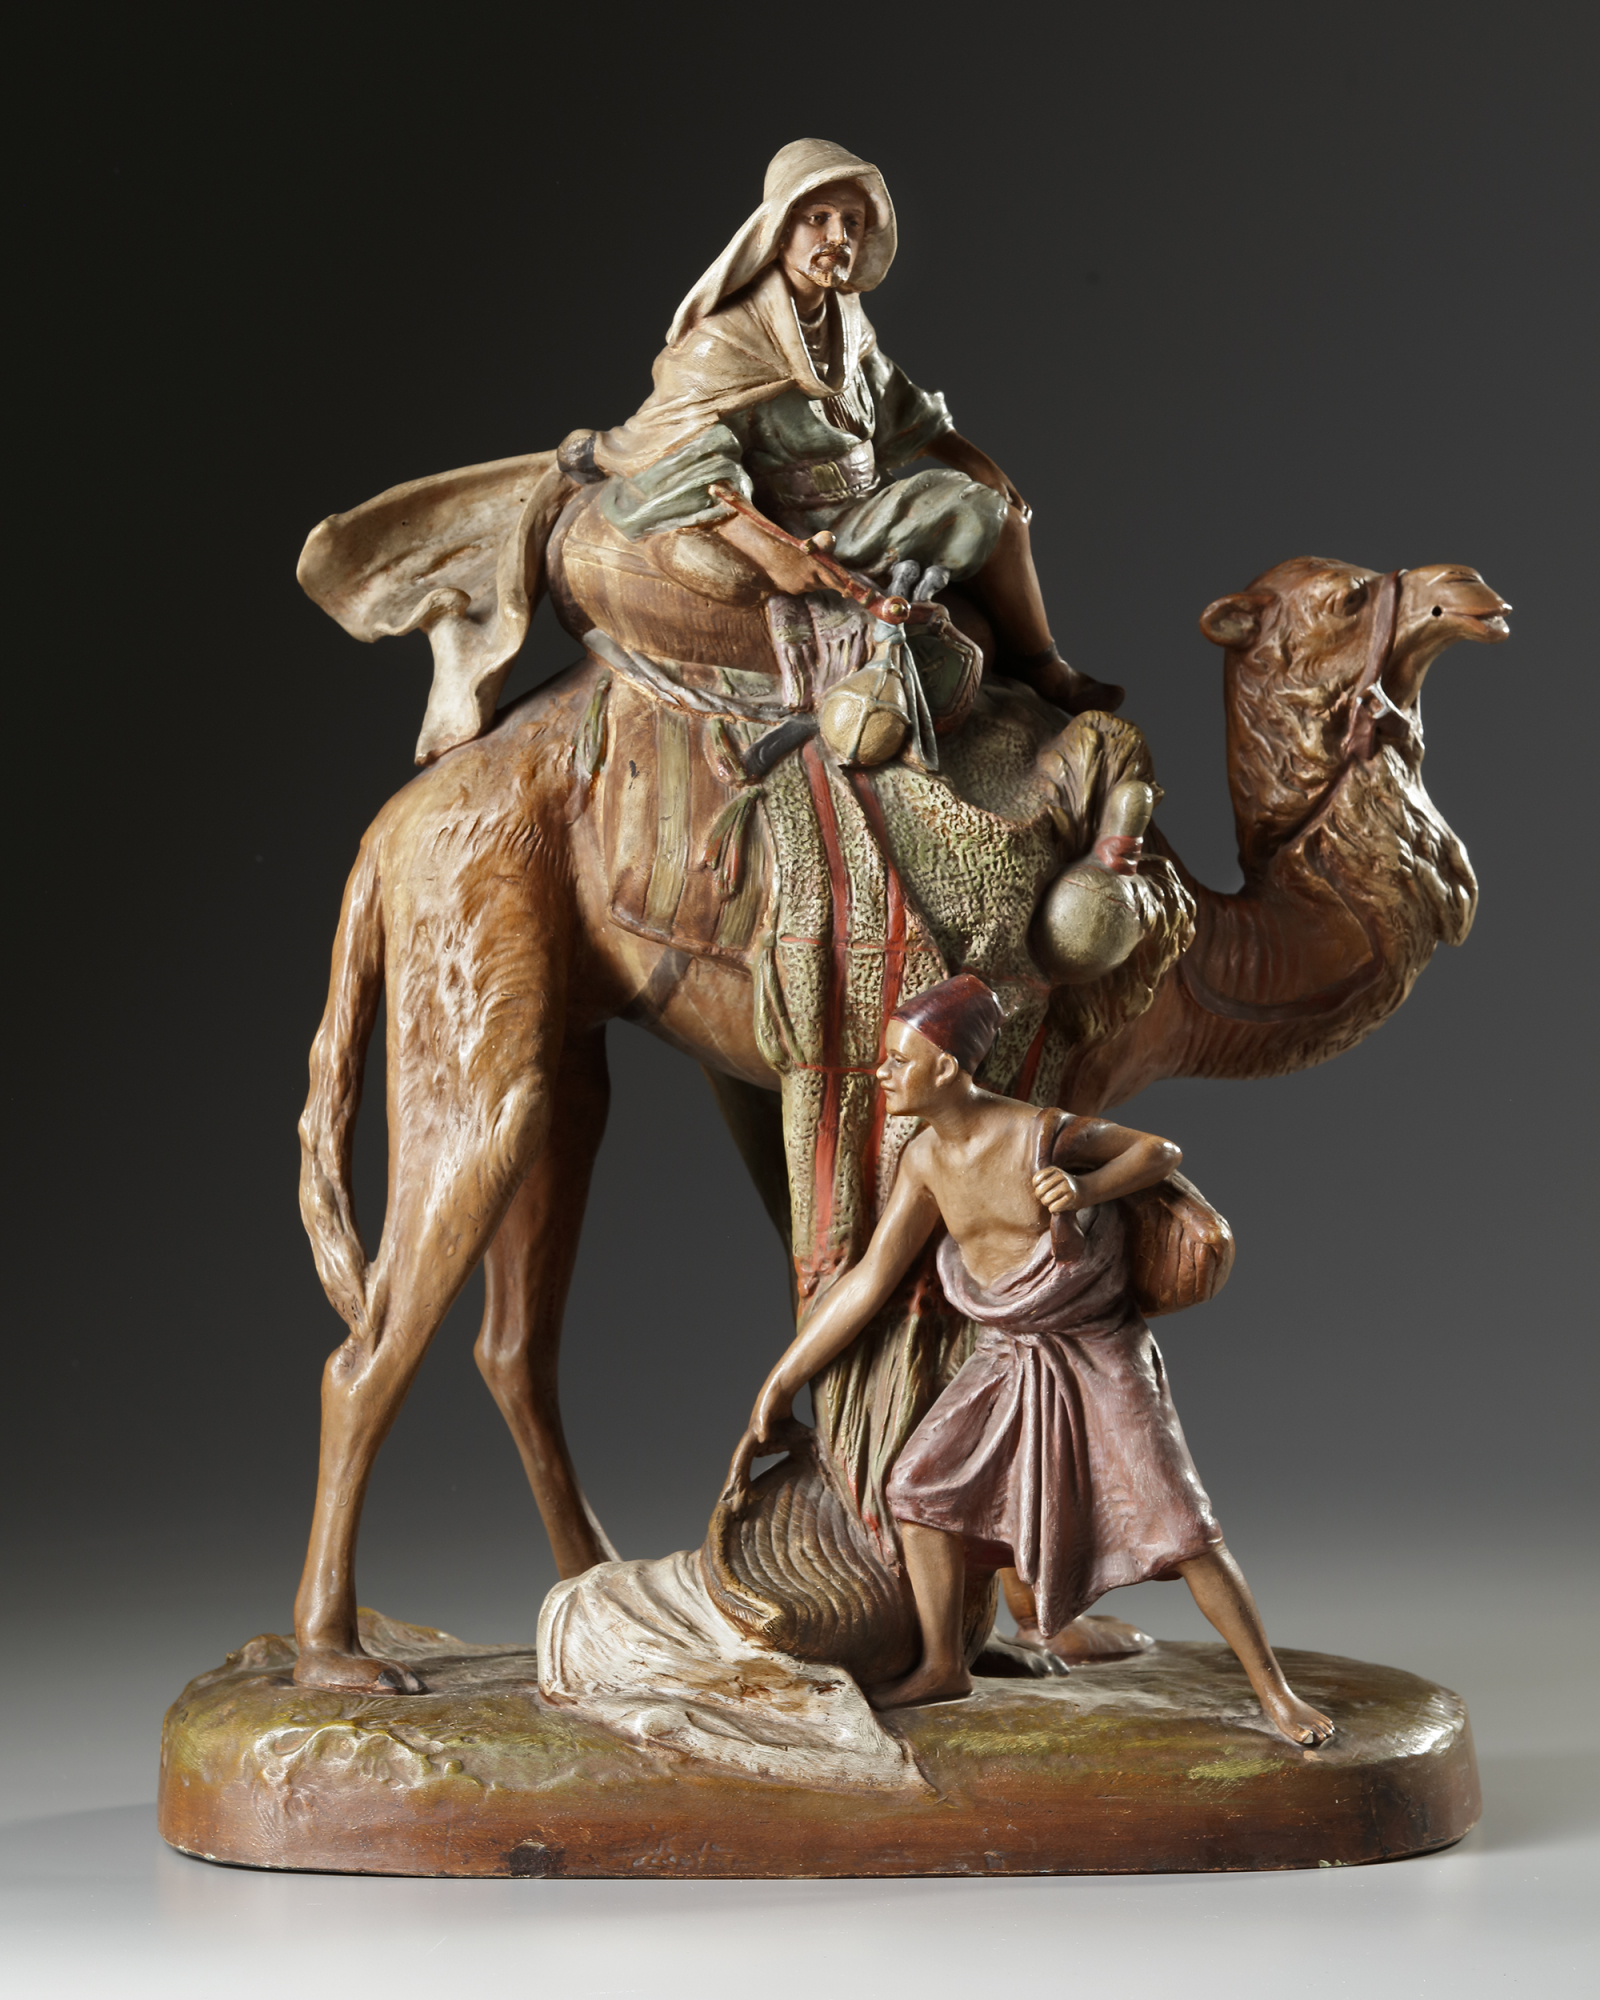 AN ORIENTALIST TERRACOTTA GROUP, LATE 19TH CENTURY